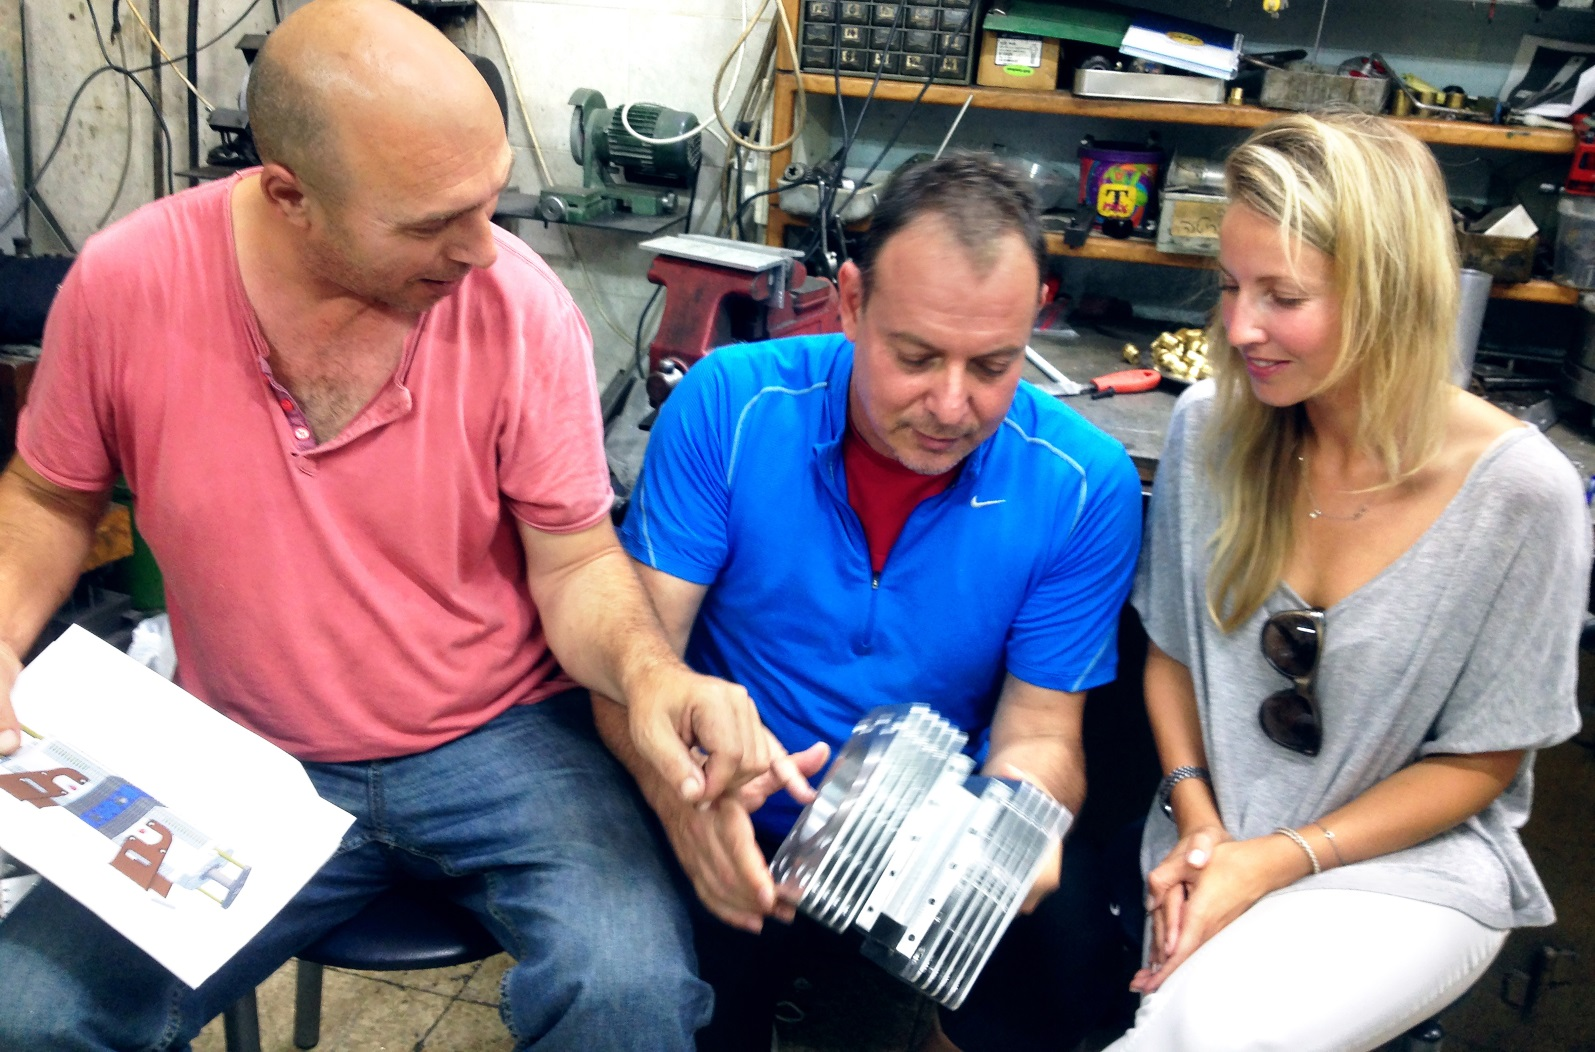 CTO Shaul Yaakoby, CMO Gal Fridman and Director of Business Development Maya Gonik with the Aquarius engine. Photo: courtesy